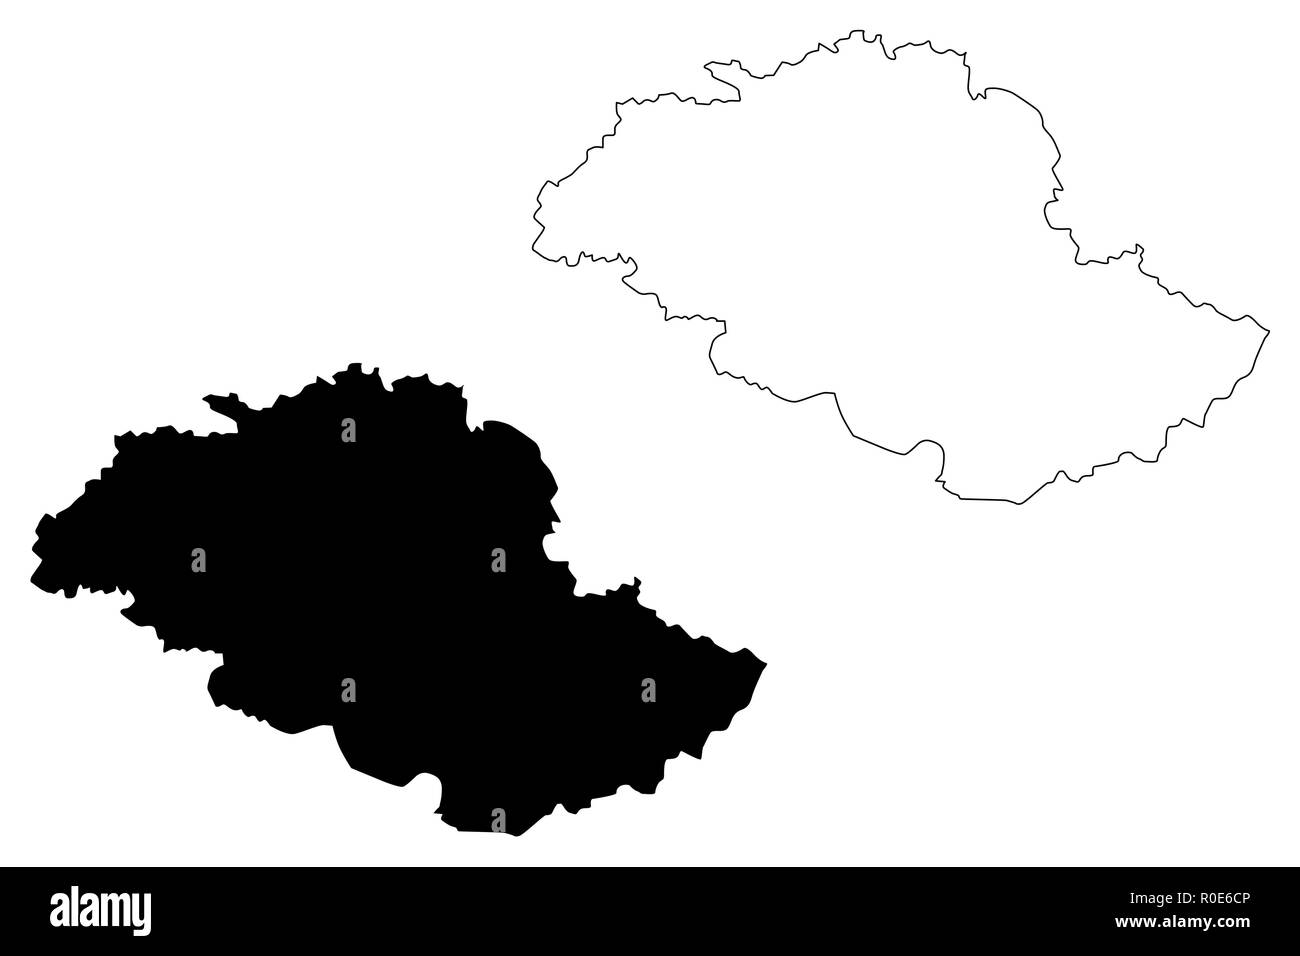 Gilgit-Baltistan (Province of Pakistan, Islamic Republic of Pakistan, Administrative units and Districts of Pakistan) map vector illustration, scribbl - Stock Image